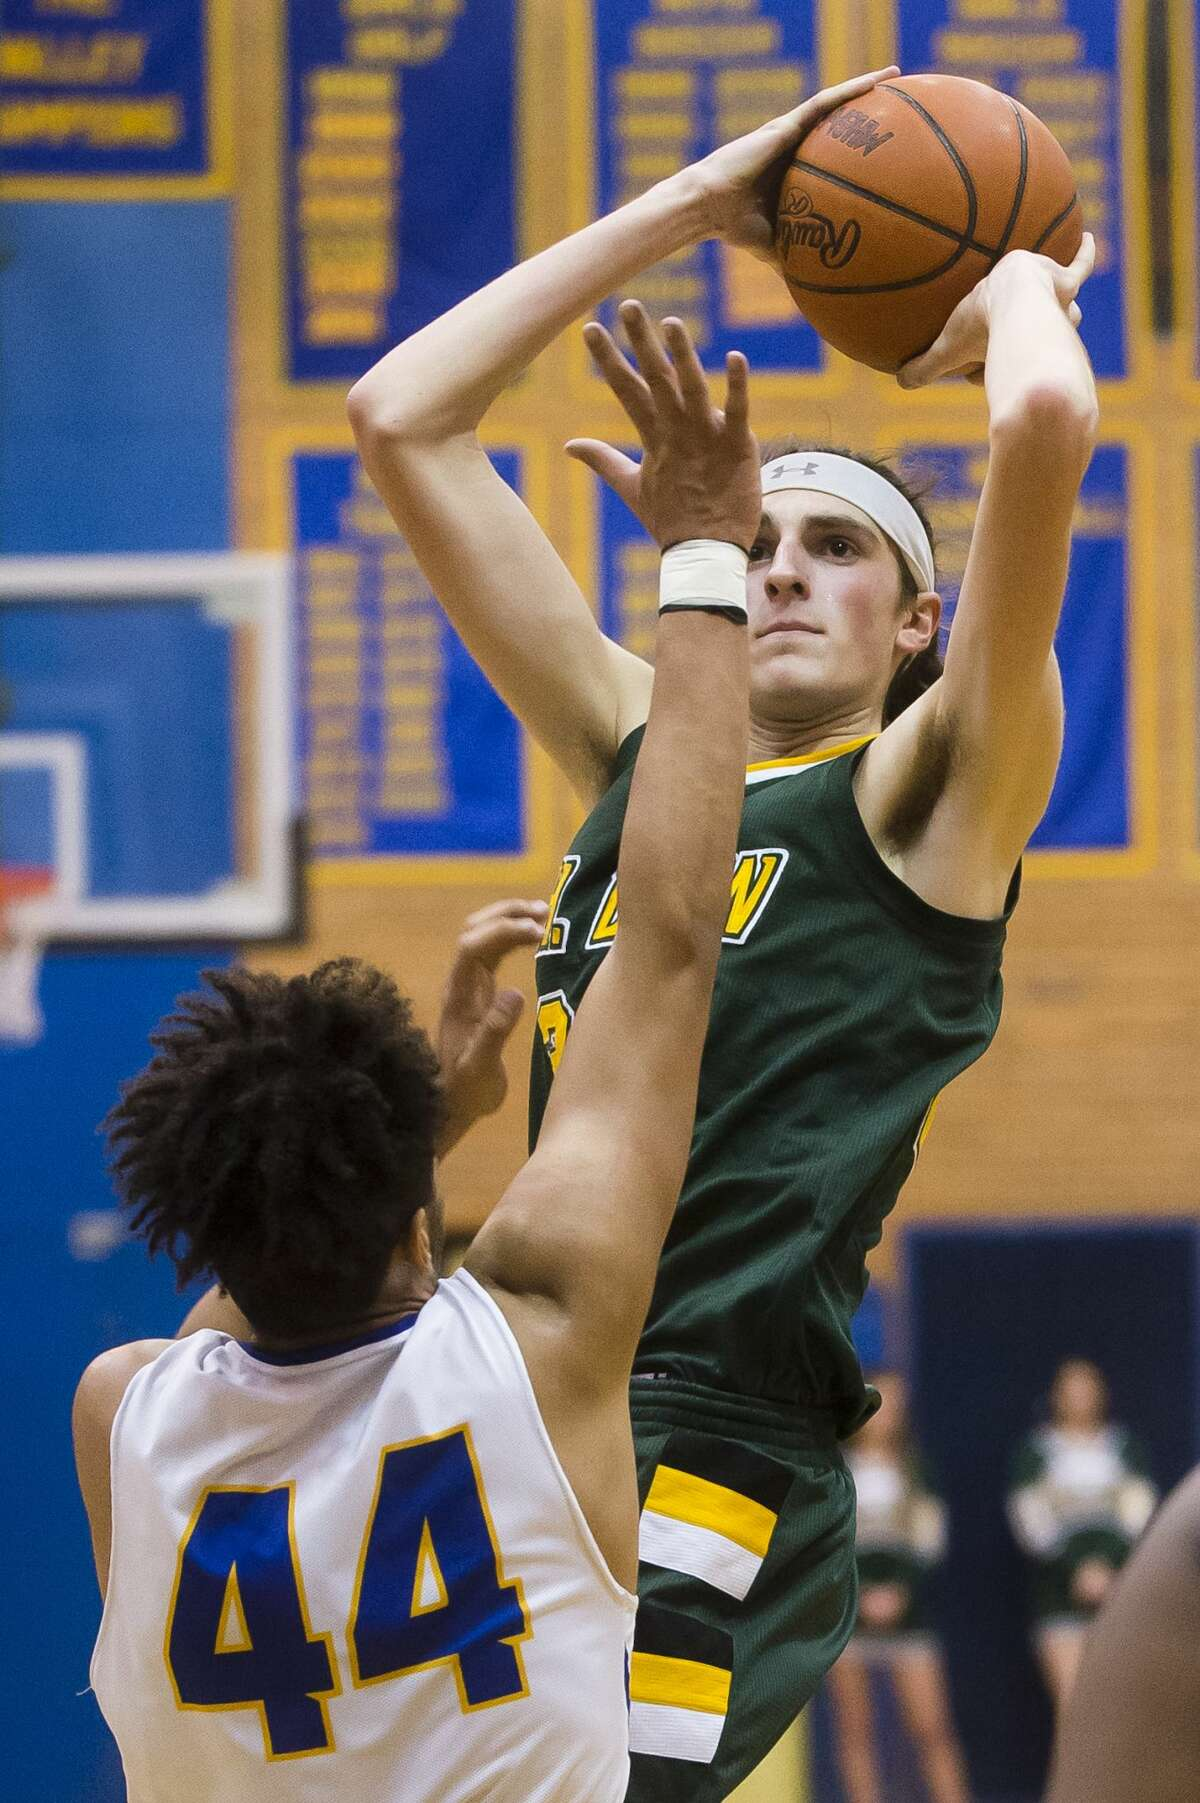 Dow senior Zac Chichester takes a shot during the Chargers' game against Midland on Tuesday, Dec. 19, 2017 at Midland High School. (Katy Kildee/kkildee@mdn.net)